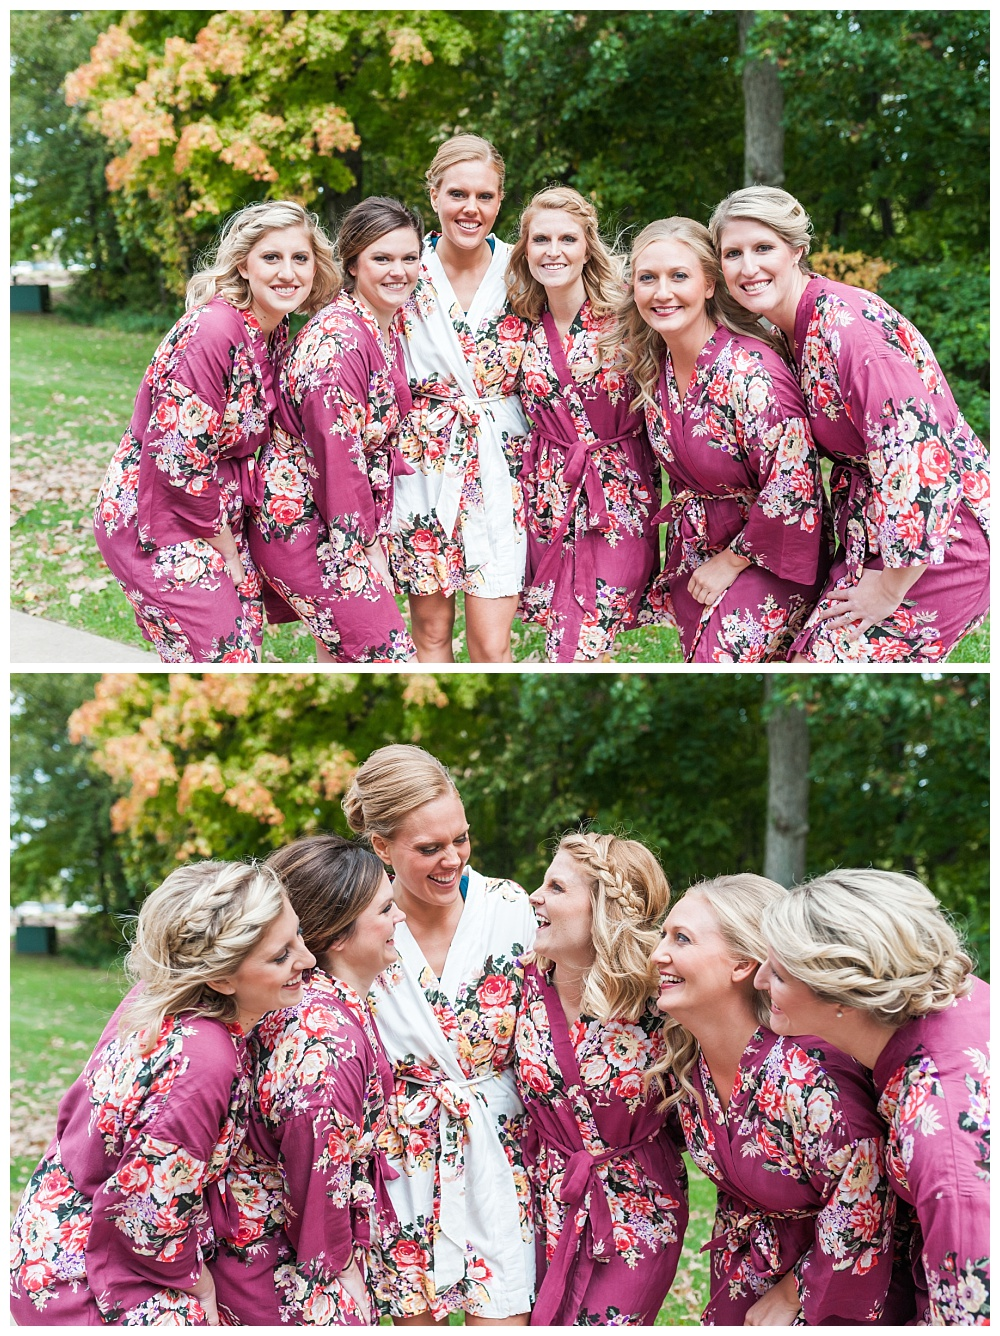 Stephanie Marie Photography TPC Deere Run Quad Cities Iowa Wedding Photographer Maggy Dan Weis_0008.jpg